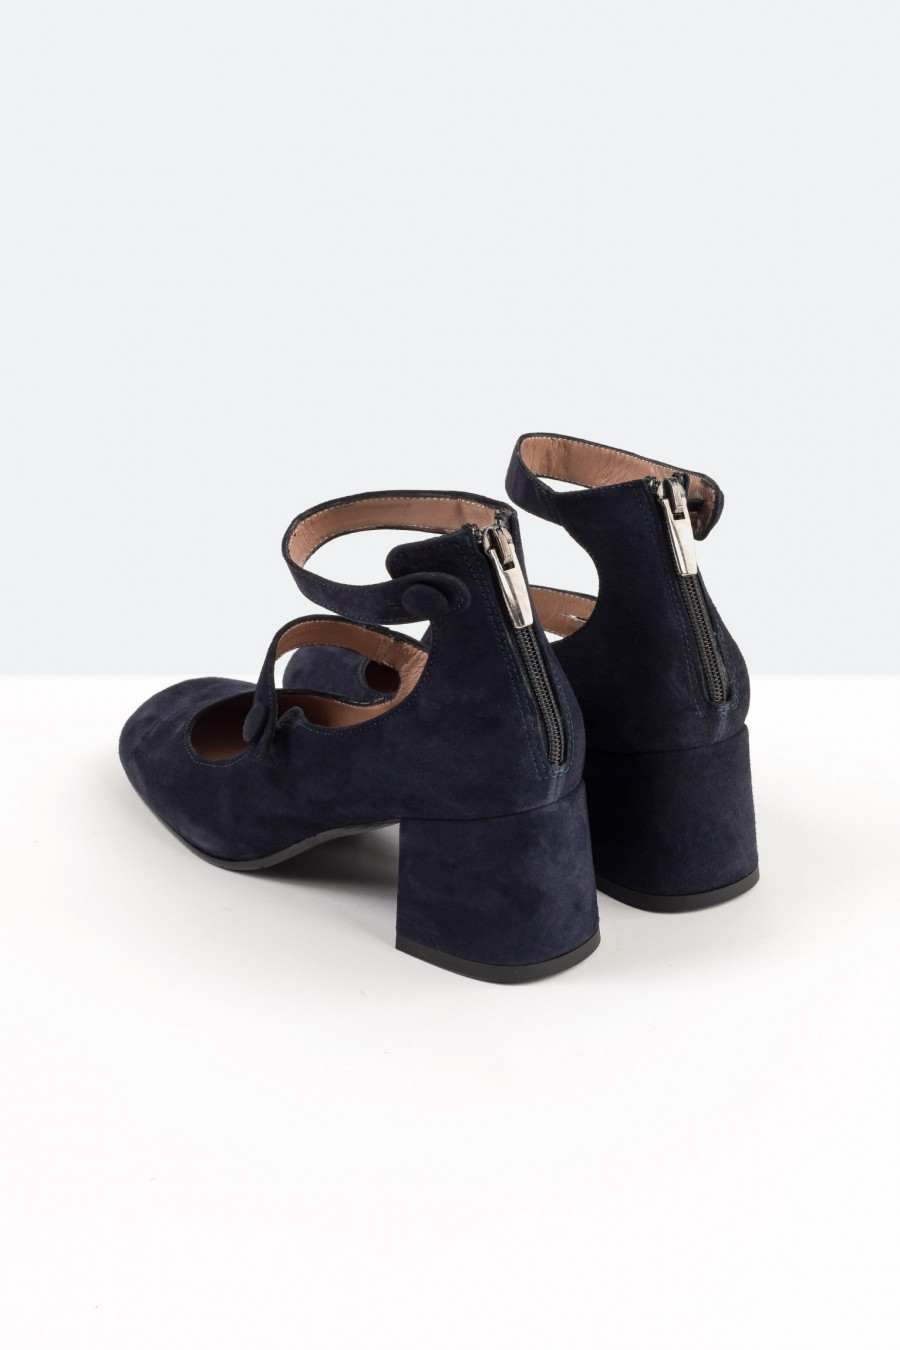 Navy blue suede shoes with ankle straps